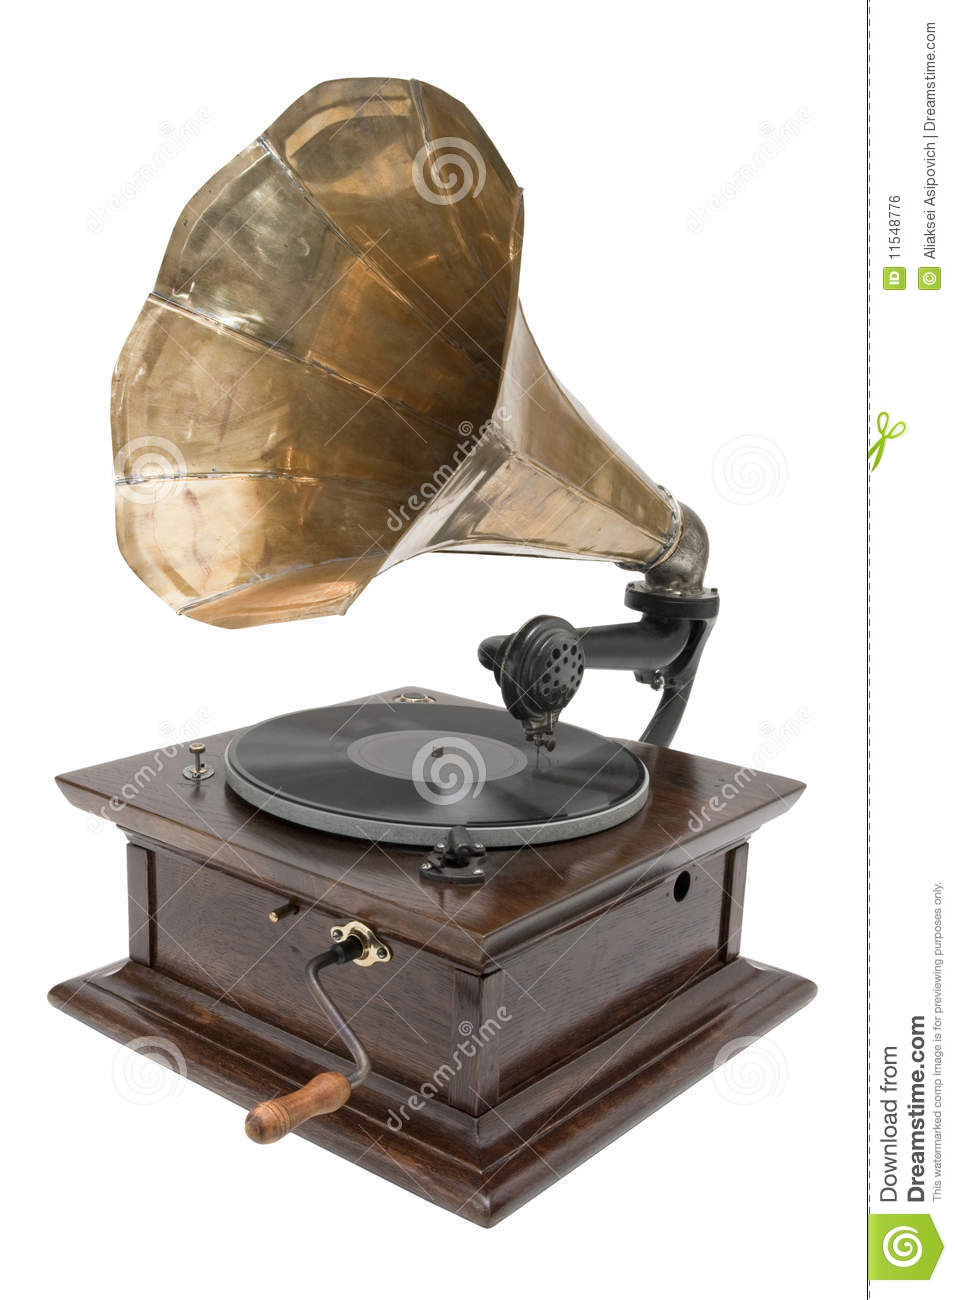 antique gramophone royalty free stock image image 11548776 vintage airplane clip art free red vintage airplane clipart